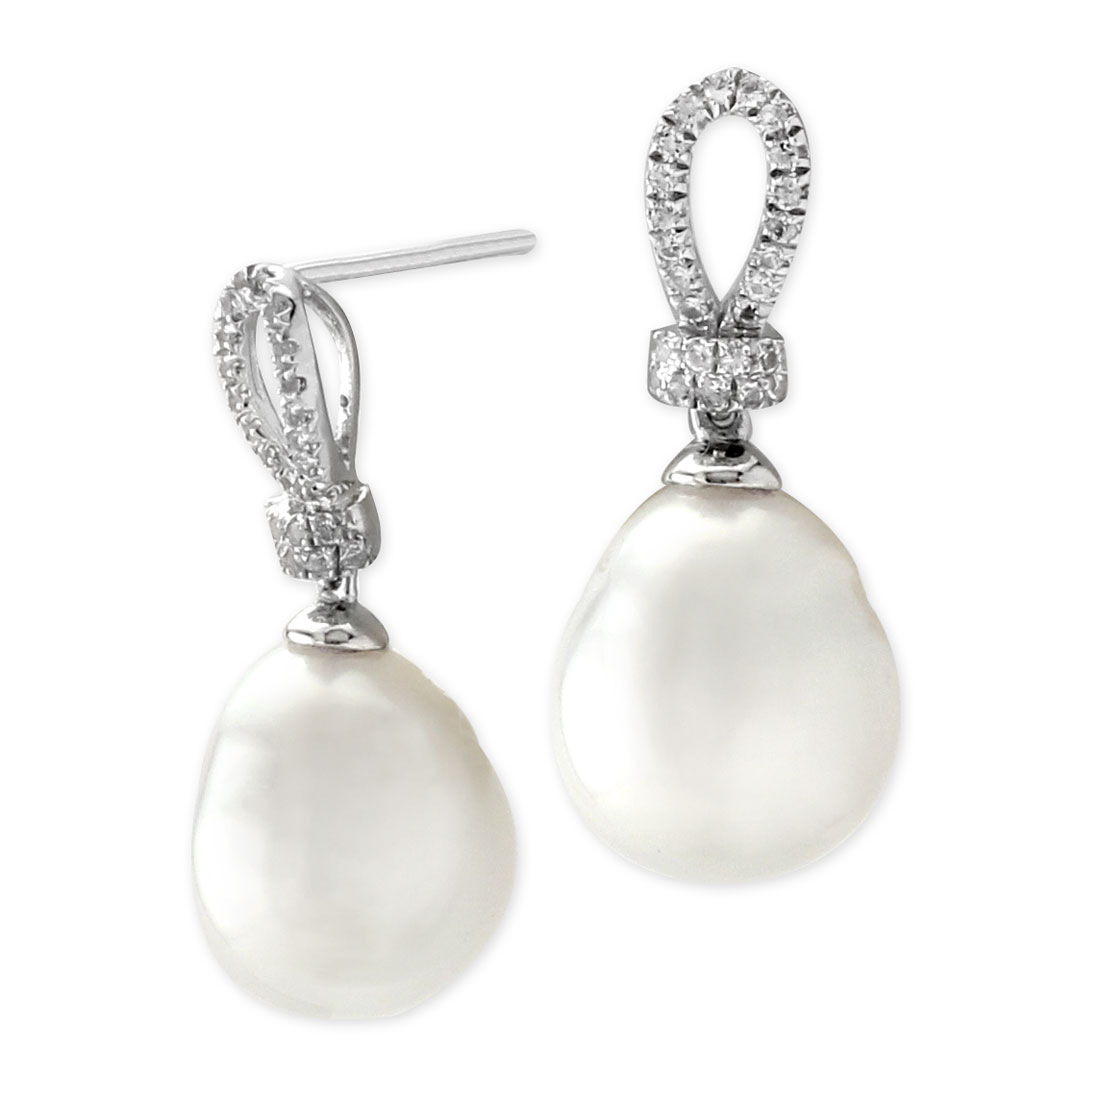 341476-South Sea Pearl and Topaz Earrings